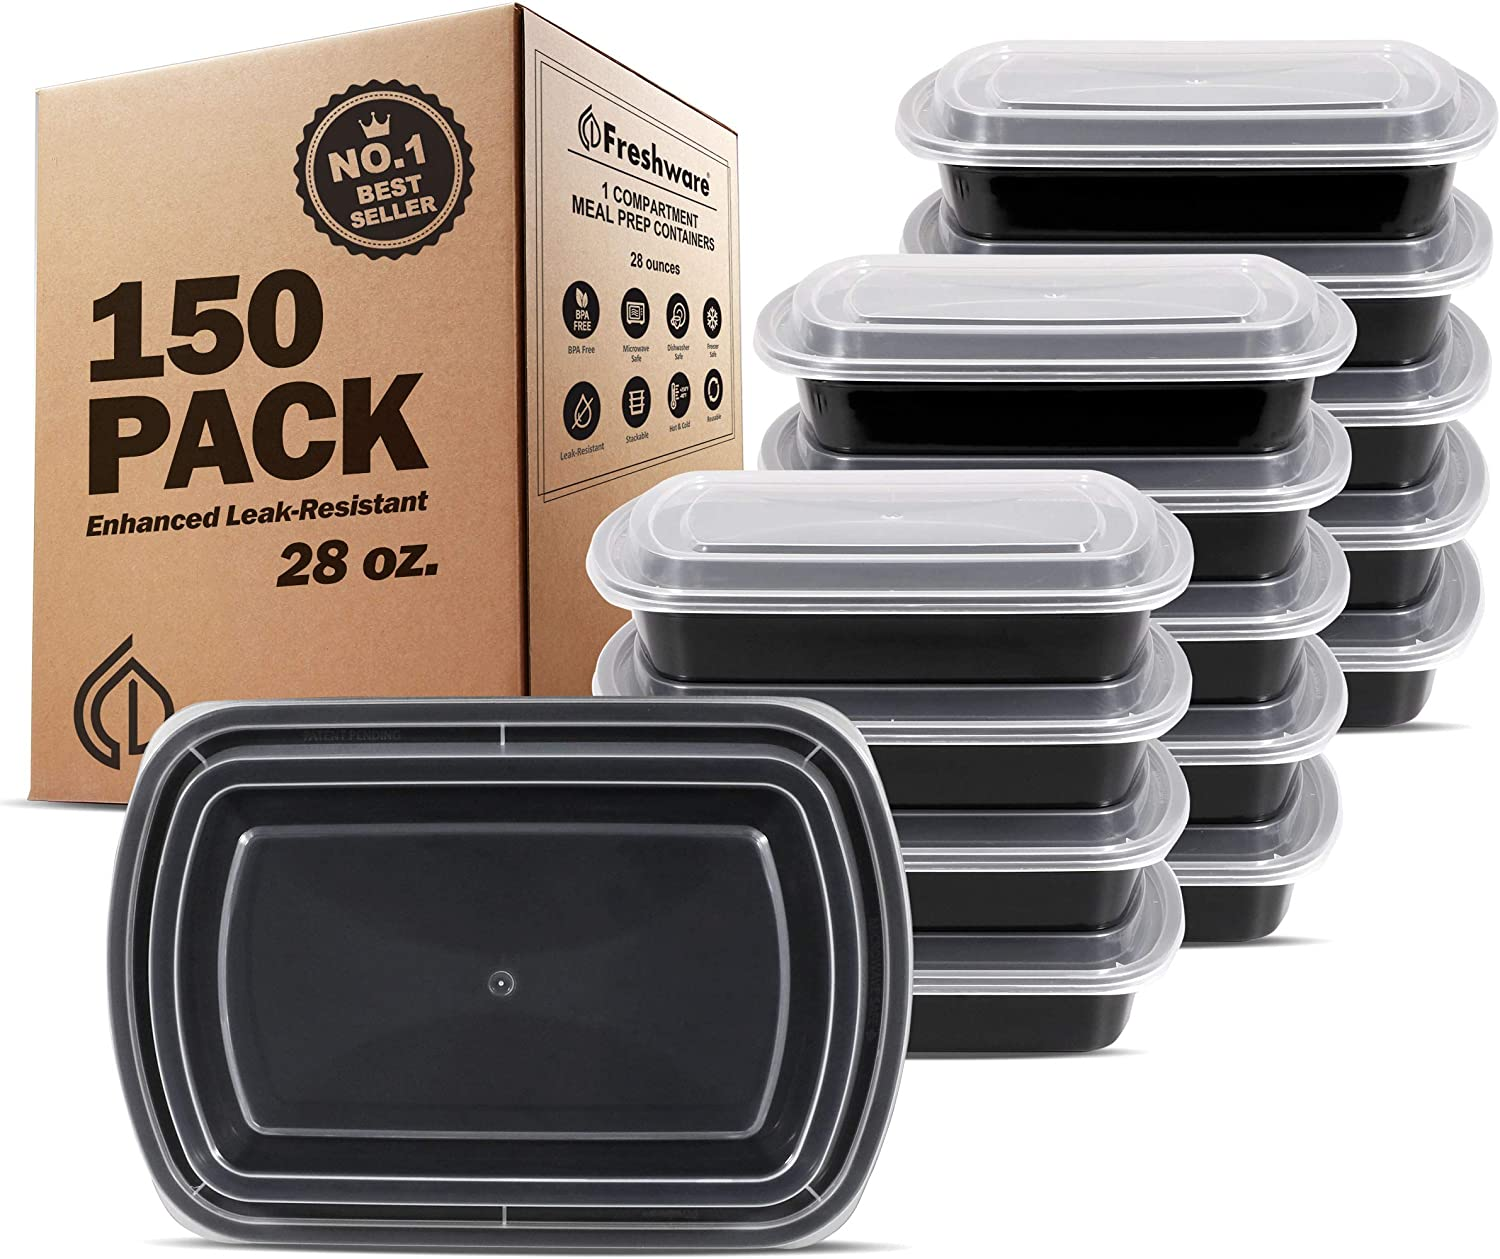 300pcs Meal Prep Reusable Leakproof Microwaveable 28oz Food Containers 150 Sets